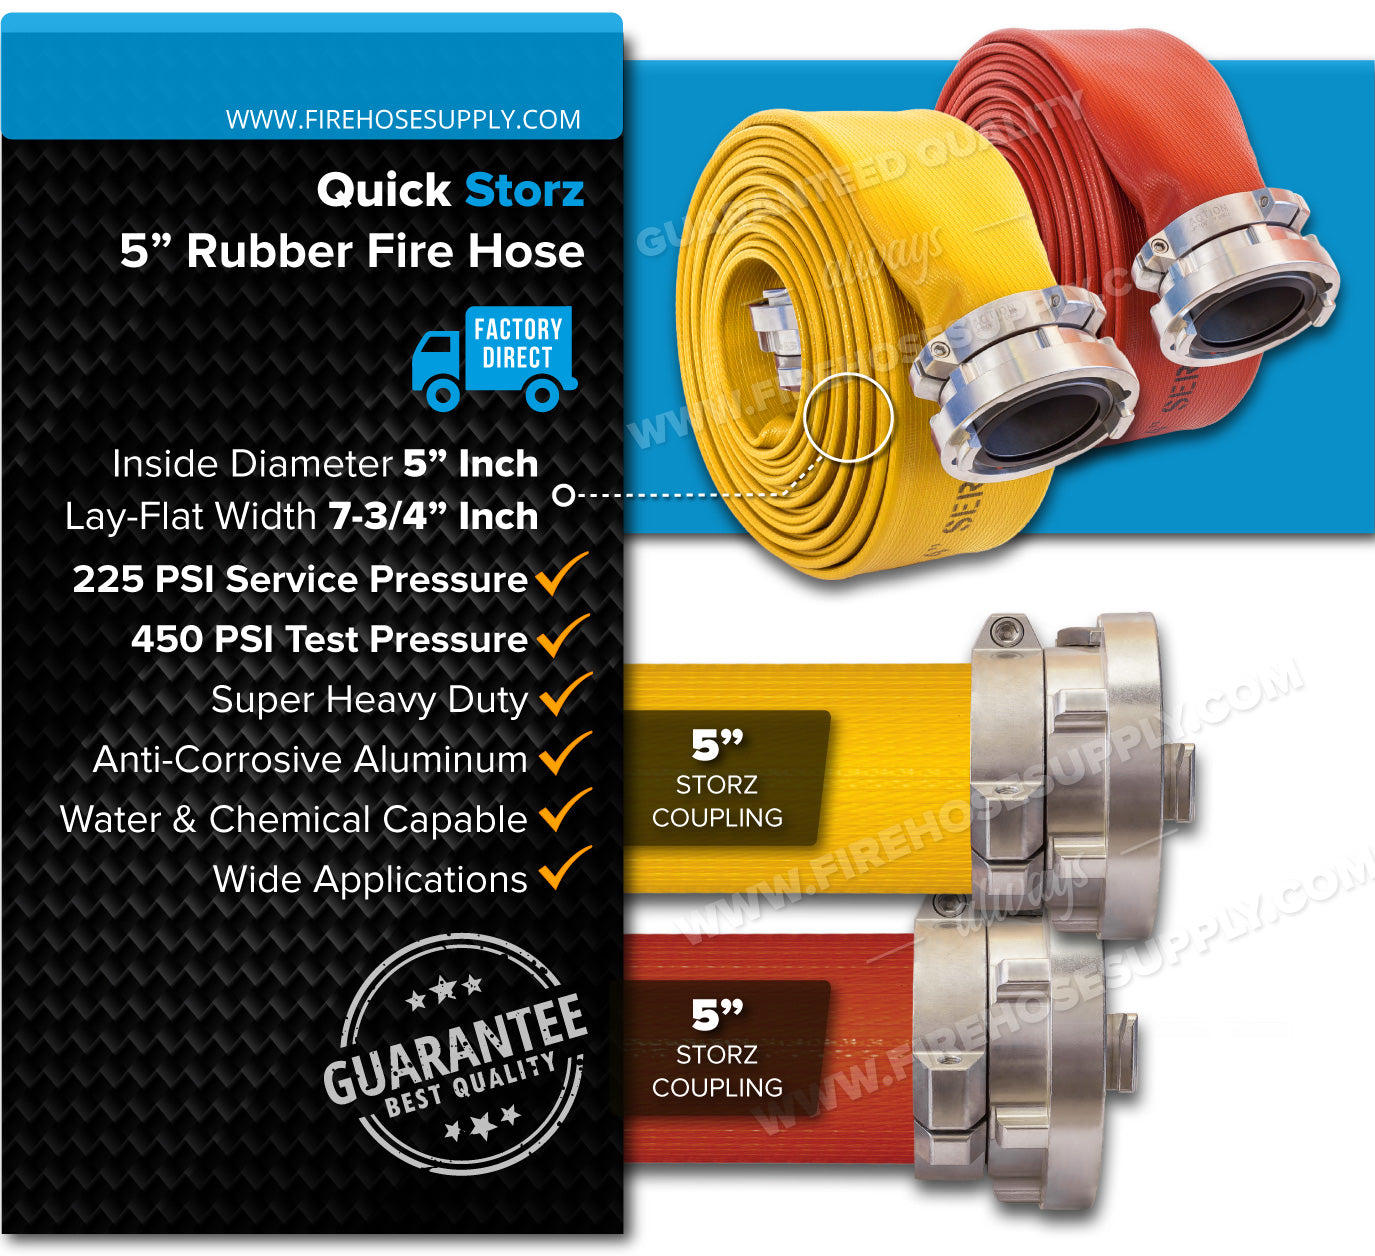 5 Inch Fire Hose Rubber Storz Yellow Red Overview